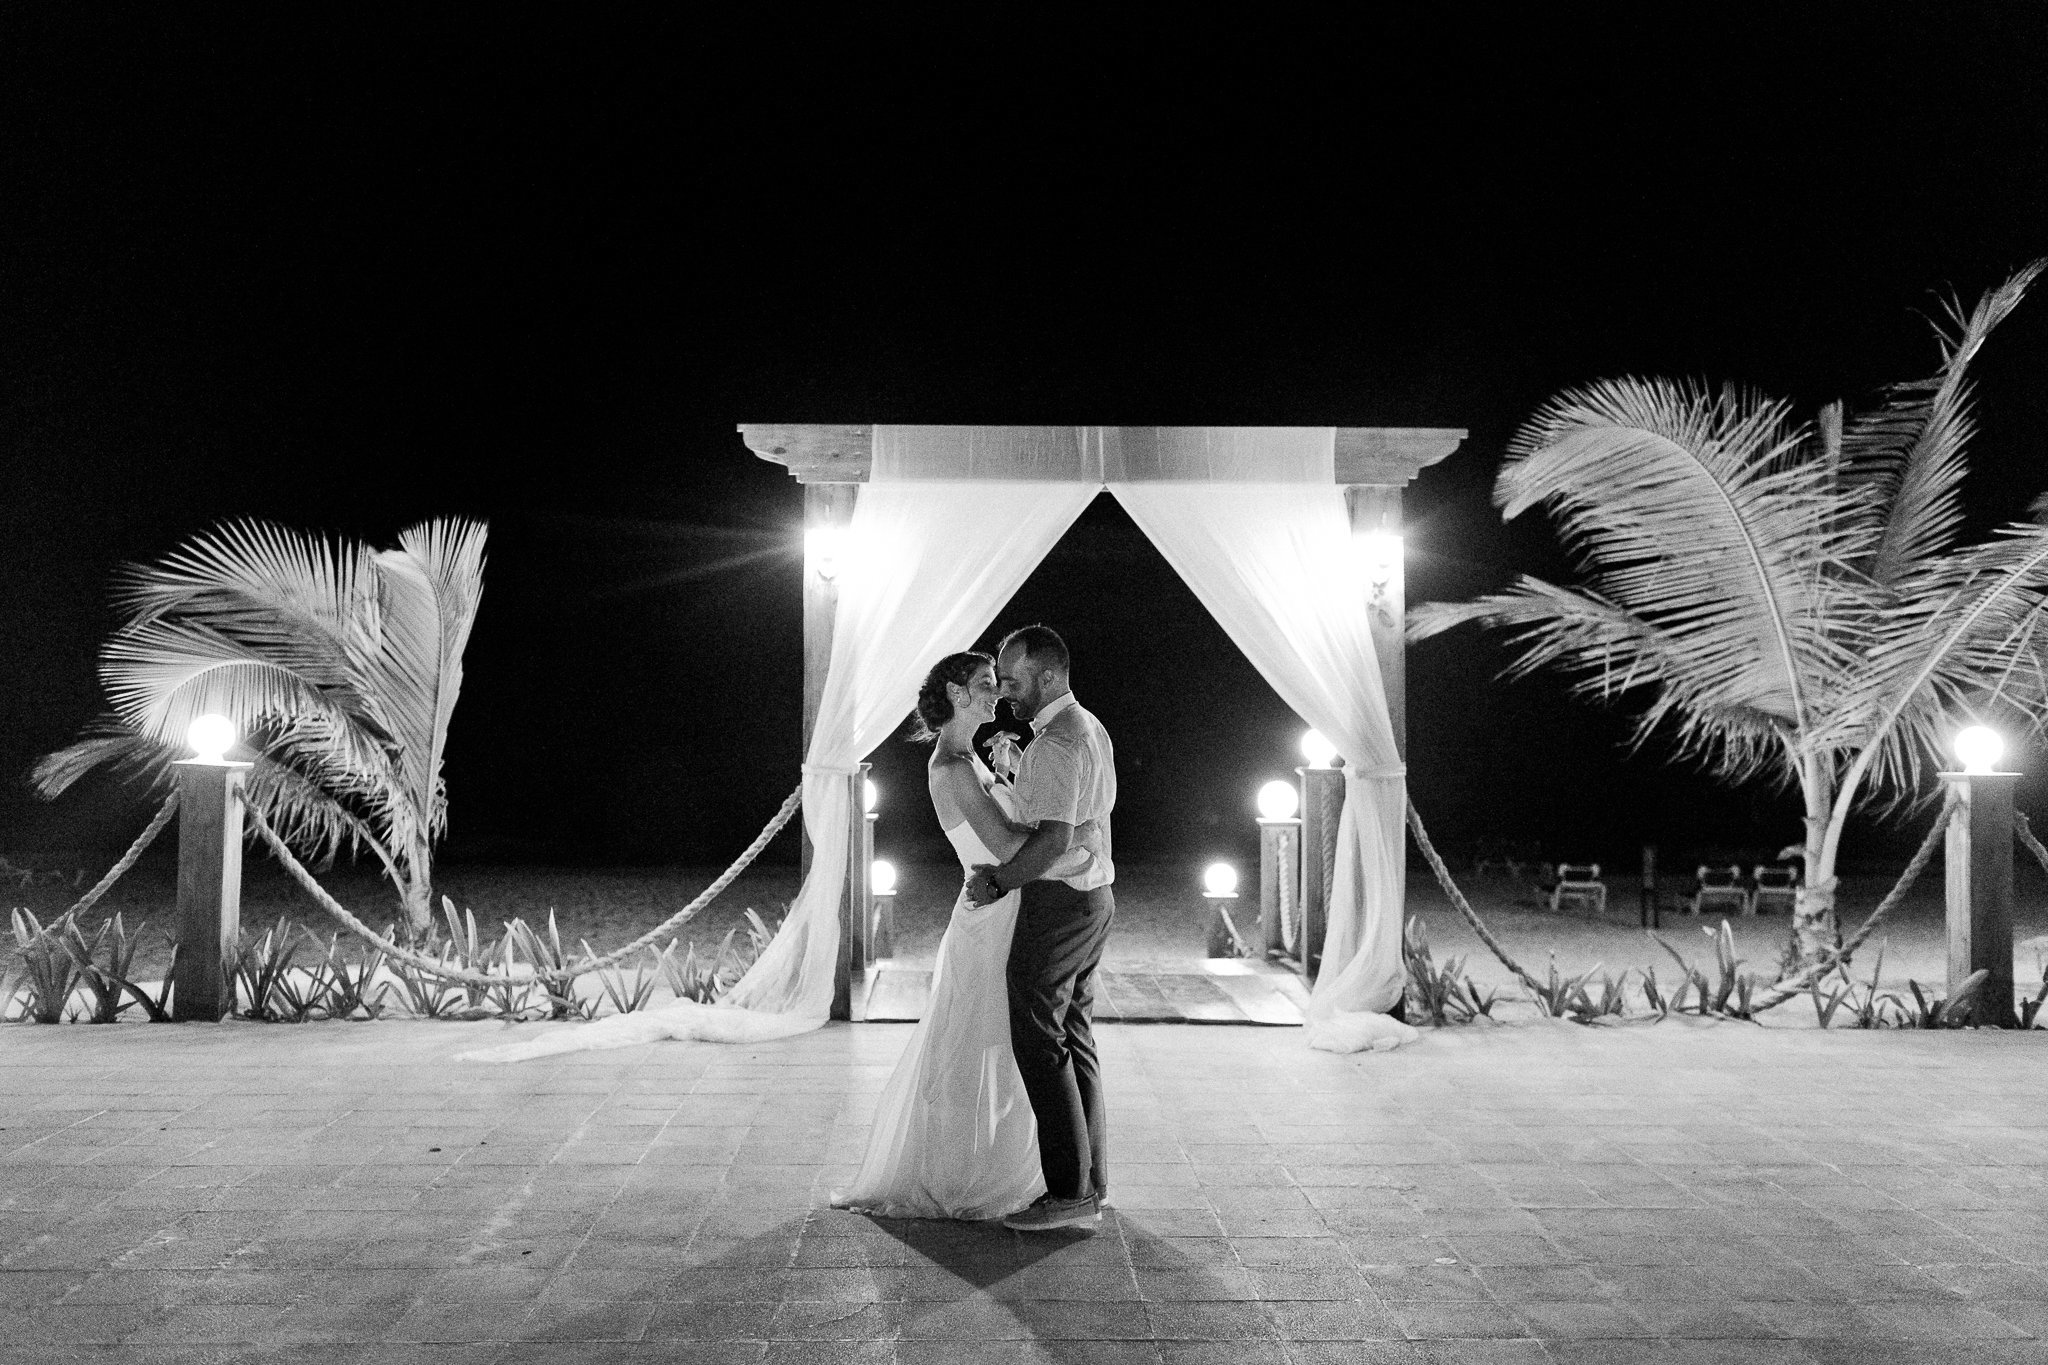 photographe-mariage-punta-cana-republique-dominicaine-lisa-renault-photographie-wedding-destination-photographer-85